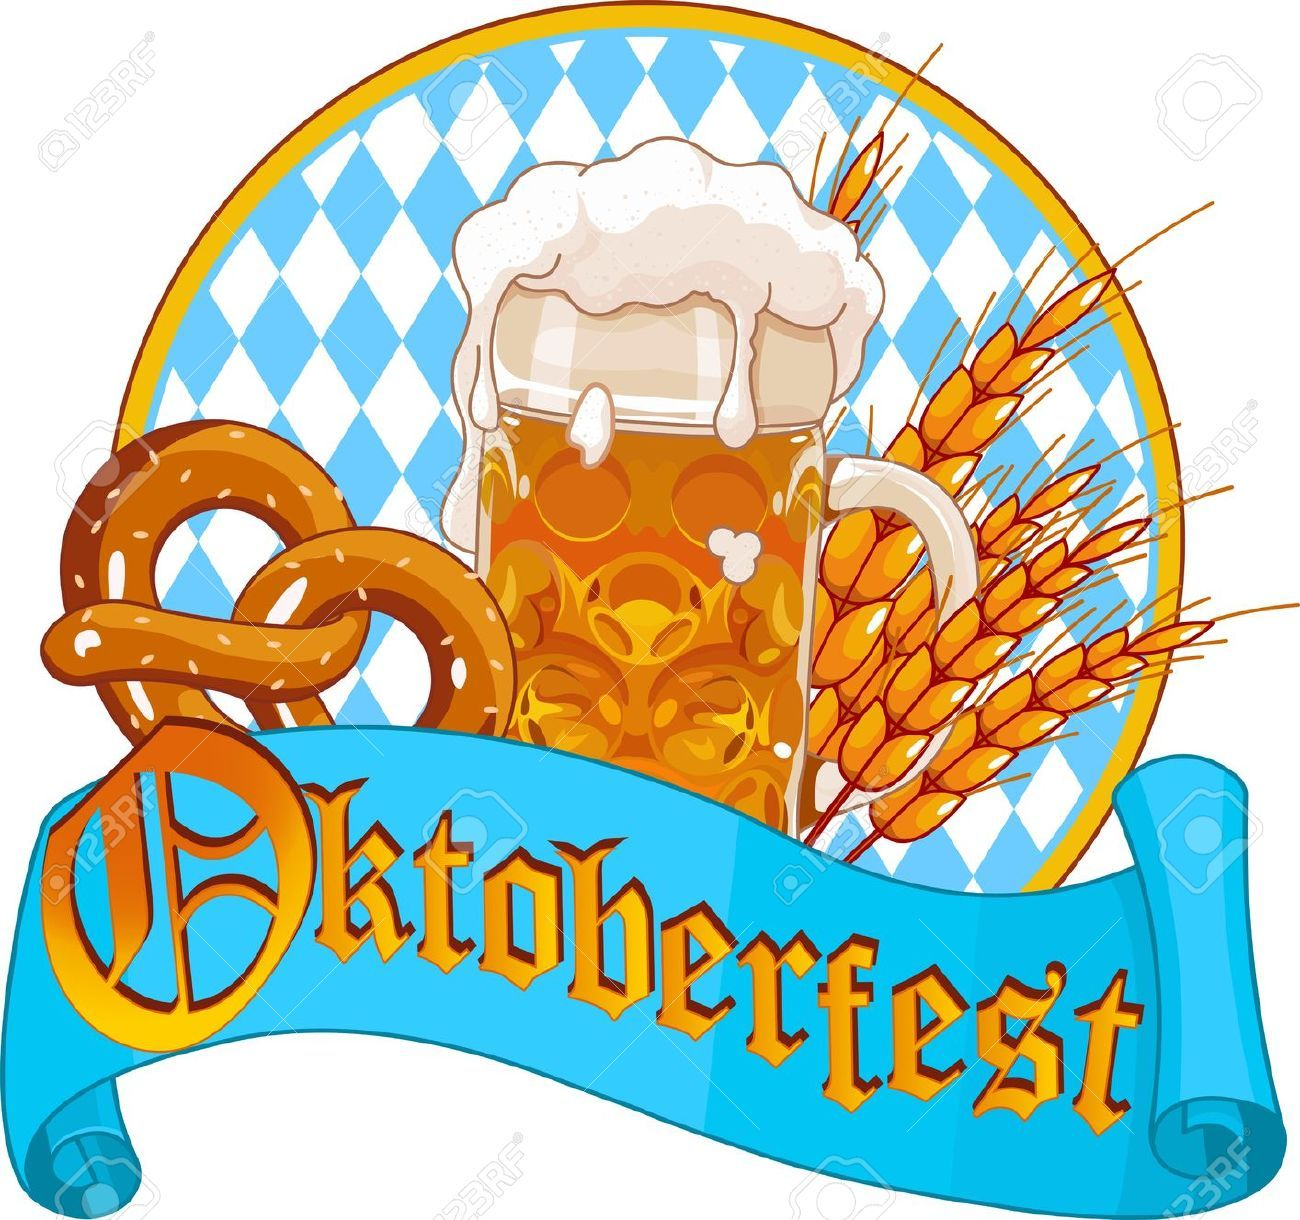 Oktoberfest Stock Vector Illustration And Royalty Free.